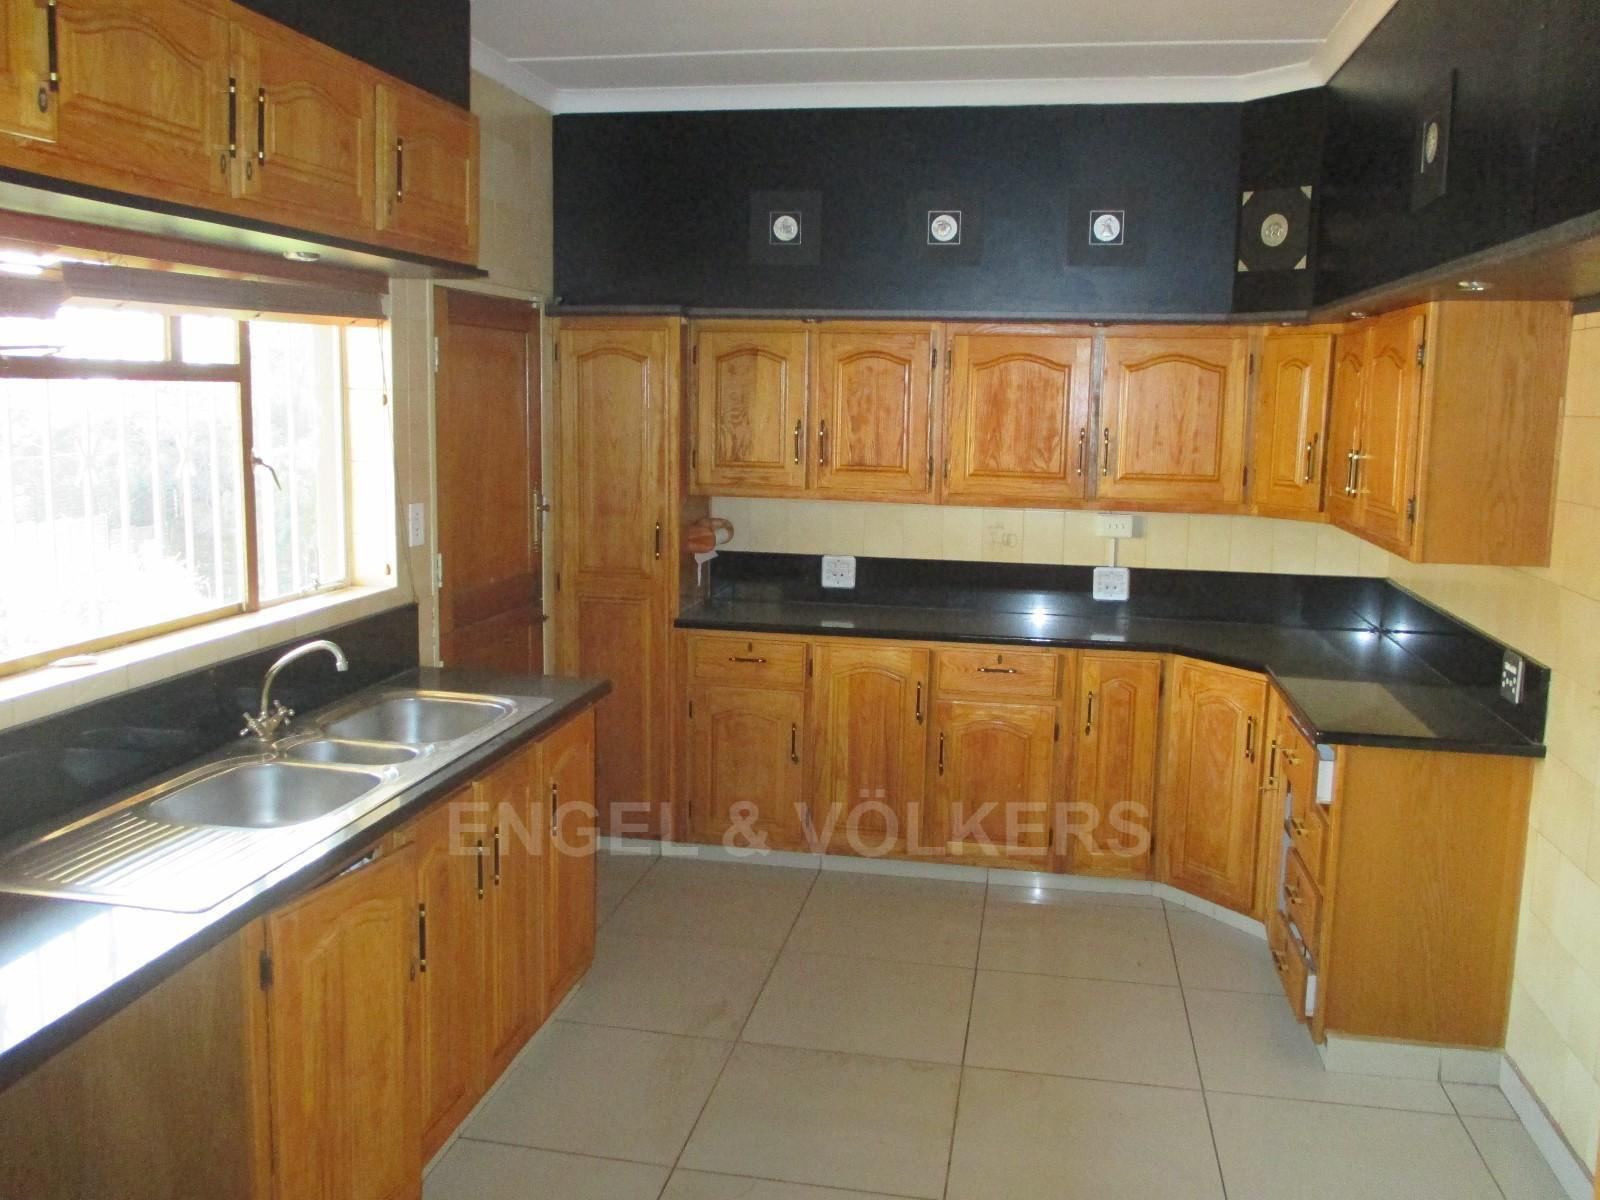 Waterkloof Ridge property to rent. Ref No: 13325445. Picture no 11